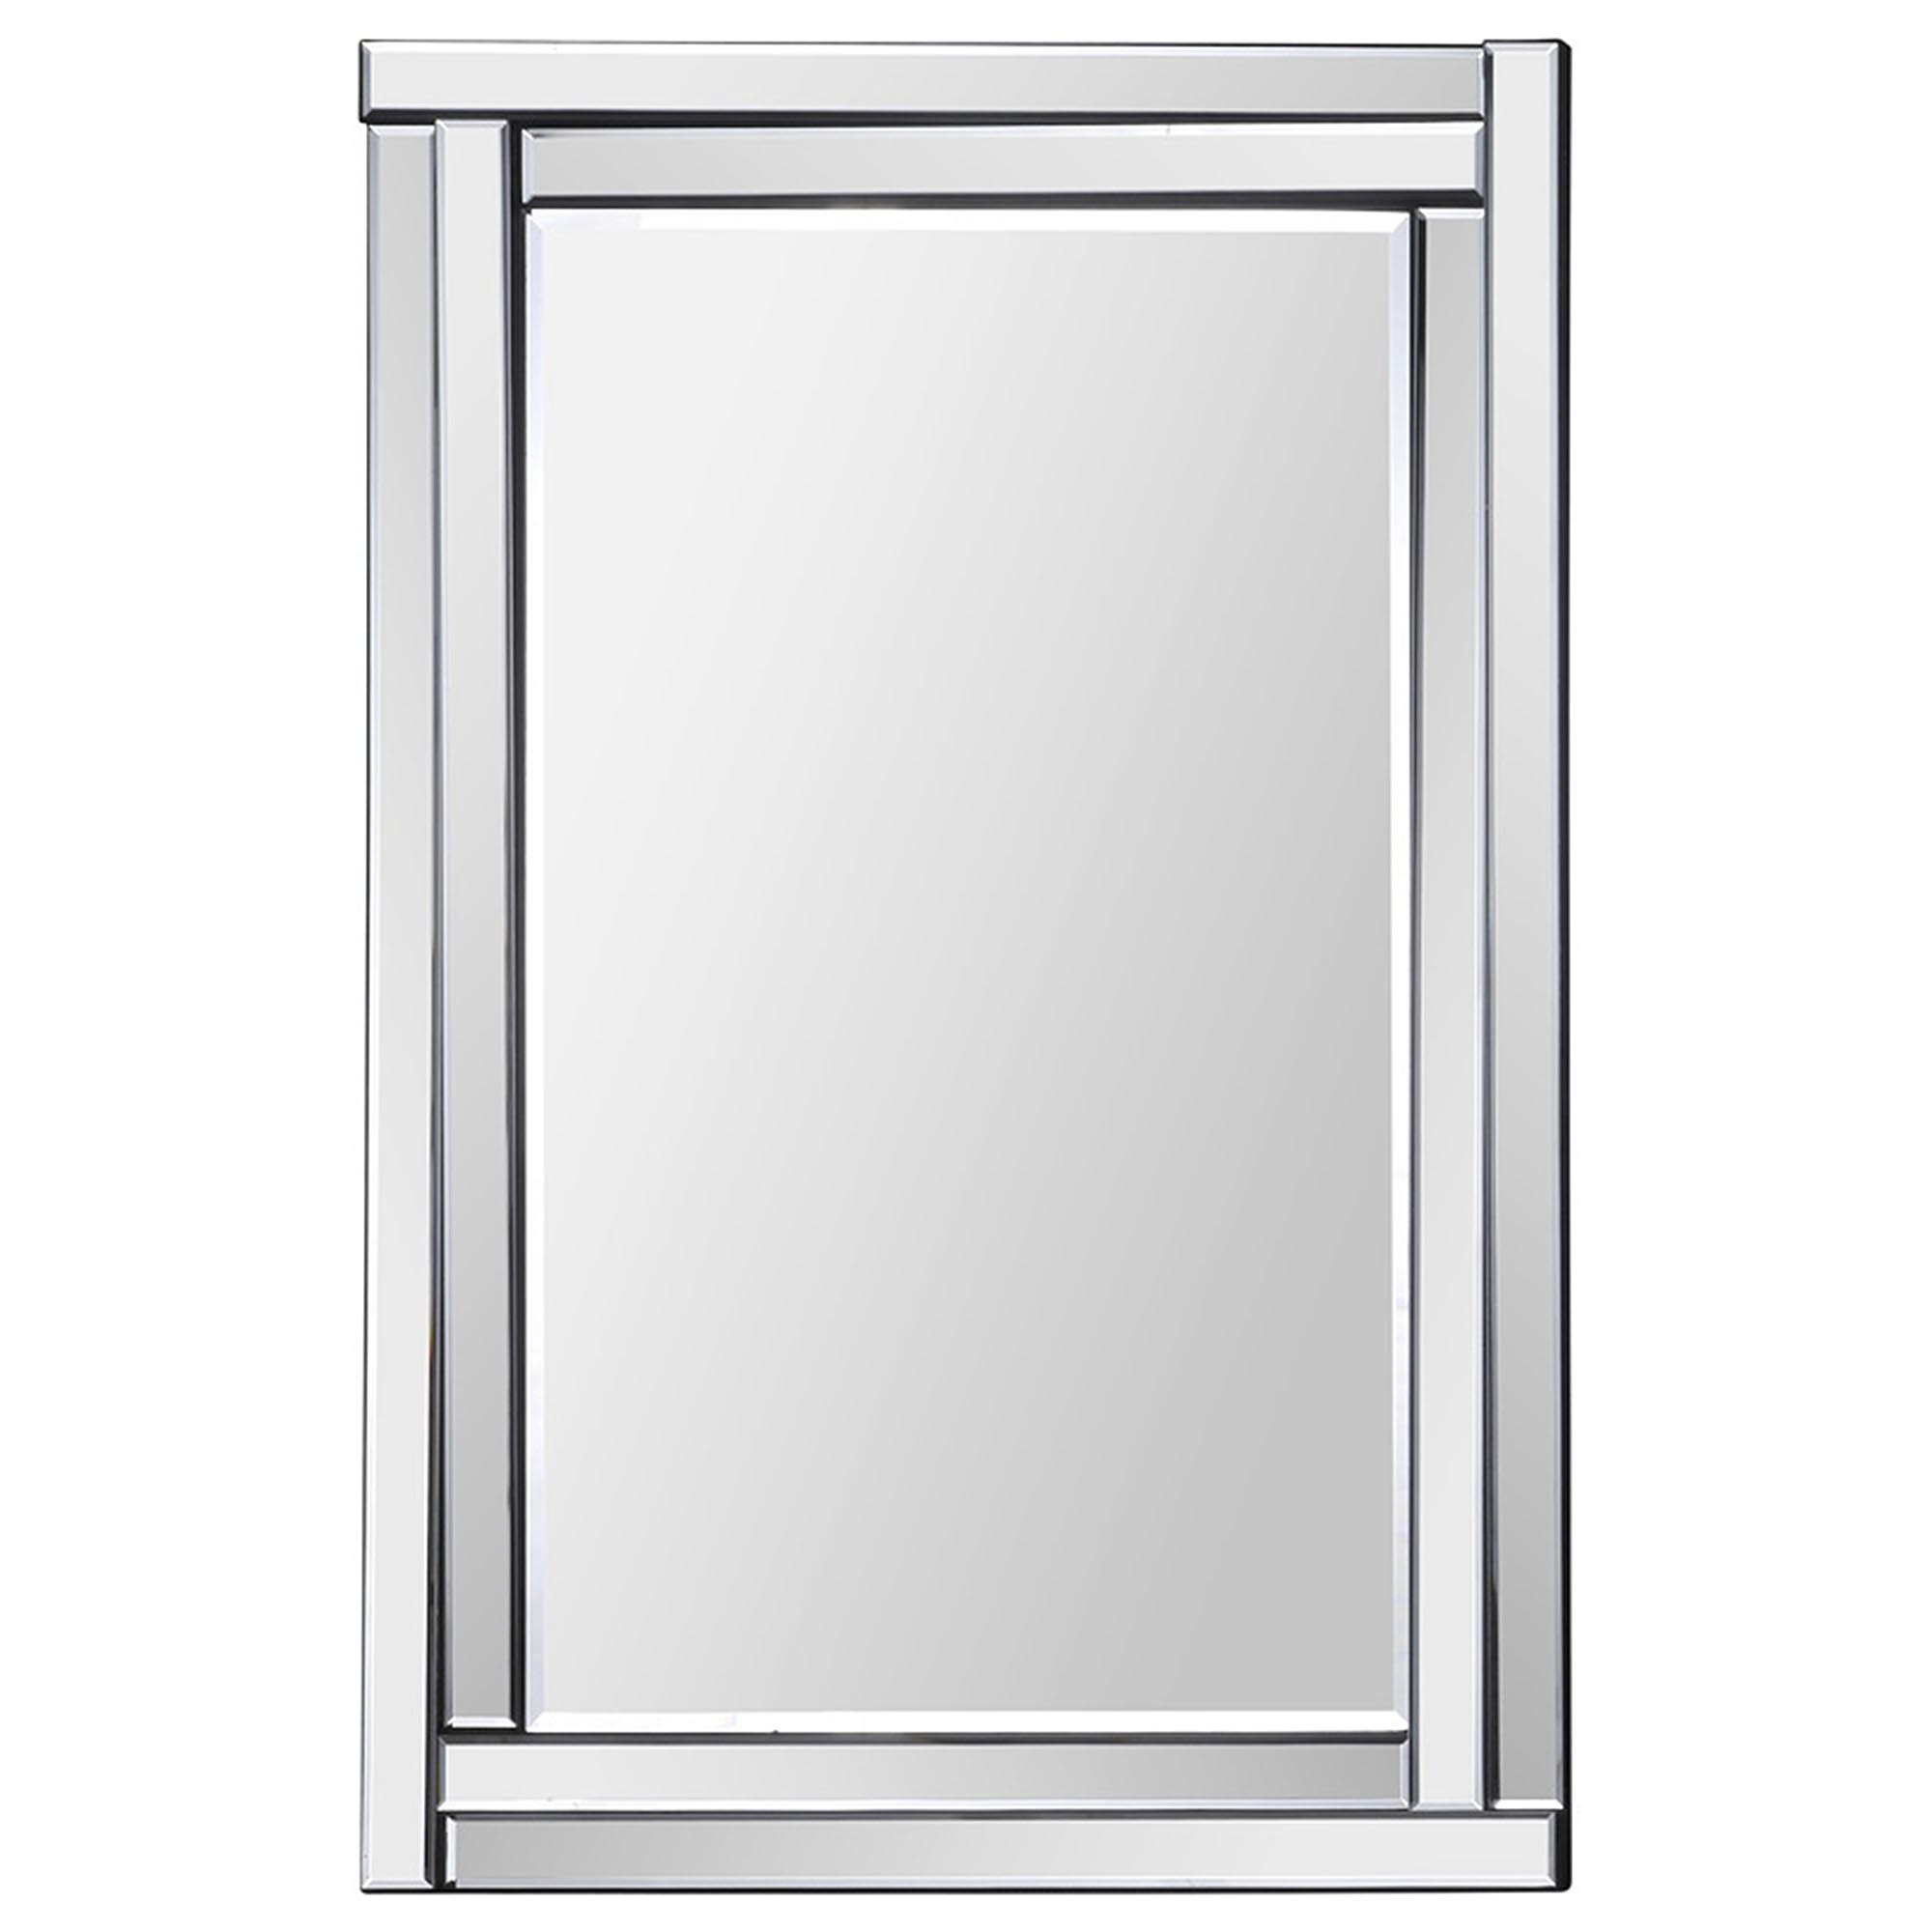 Search Ava Rectangular Mirror Product Photo